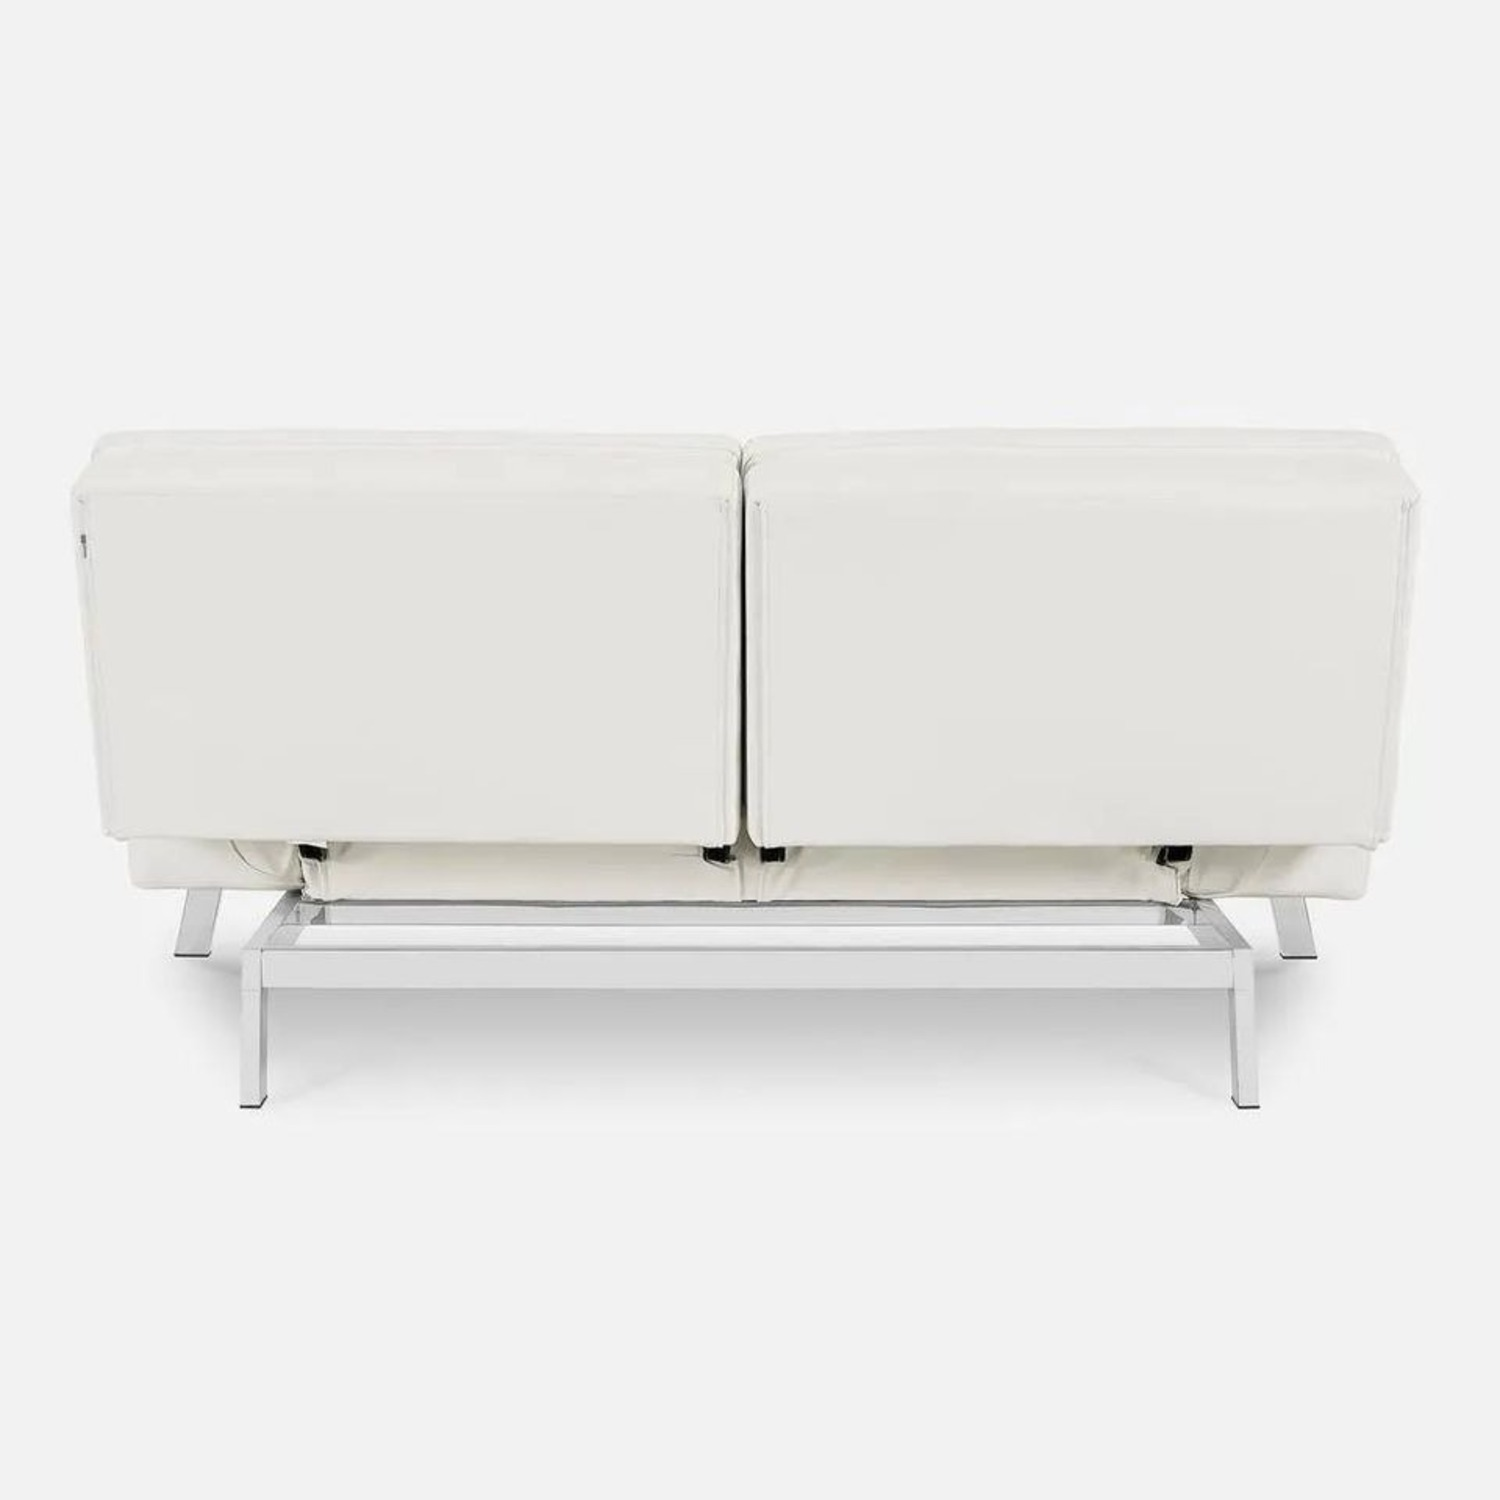 Coddle Toggle Convertible Couch Perl/White Leather - image-5